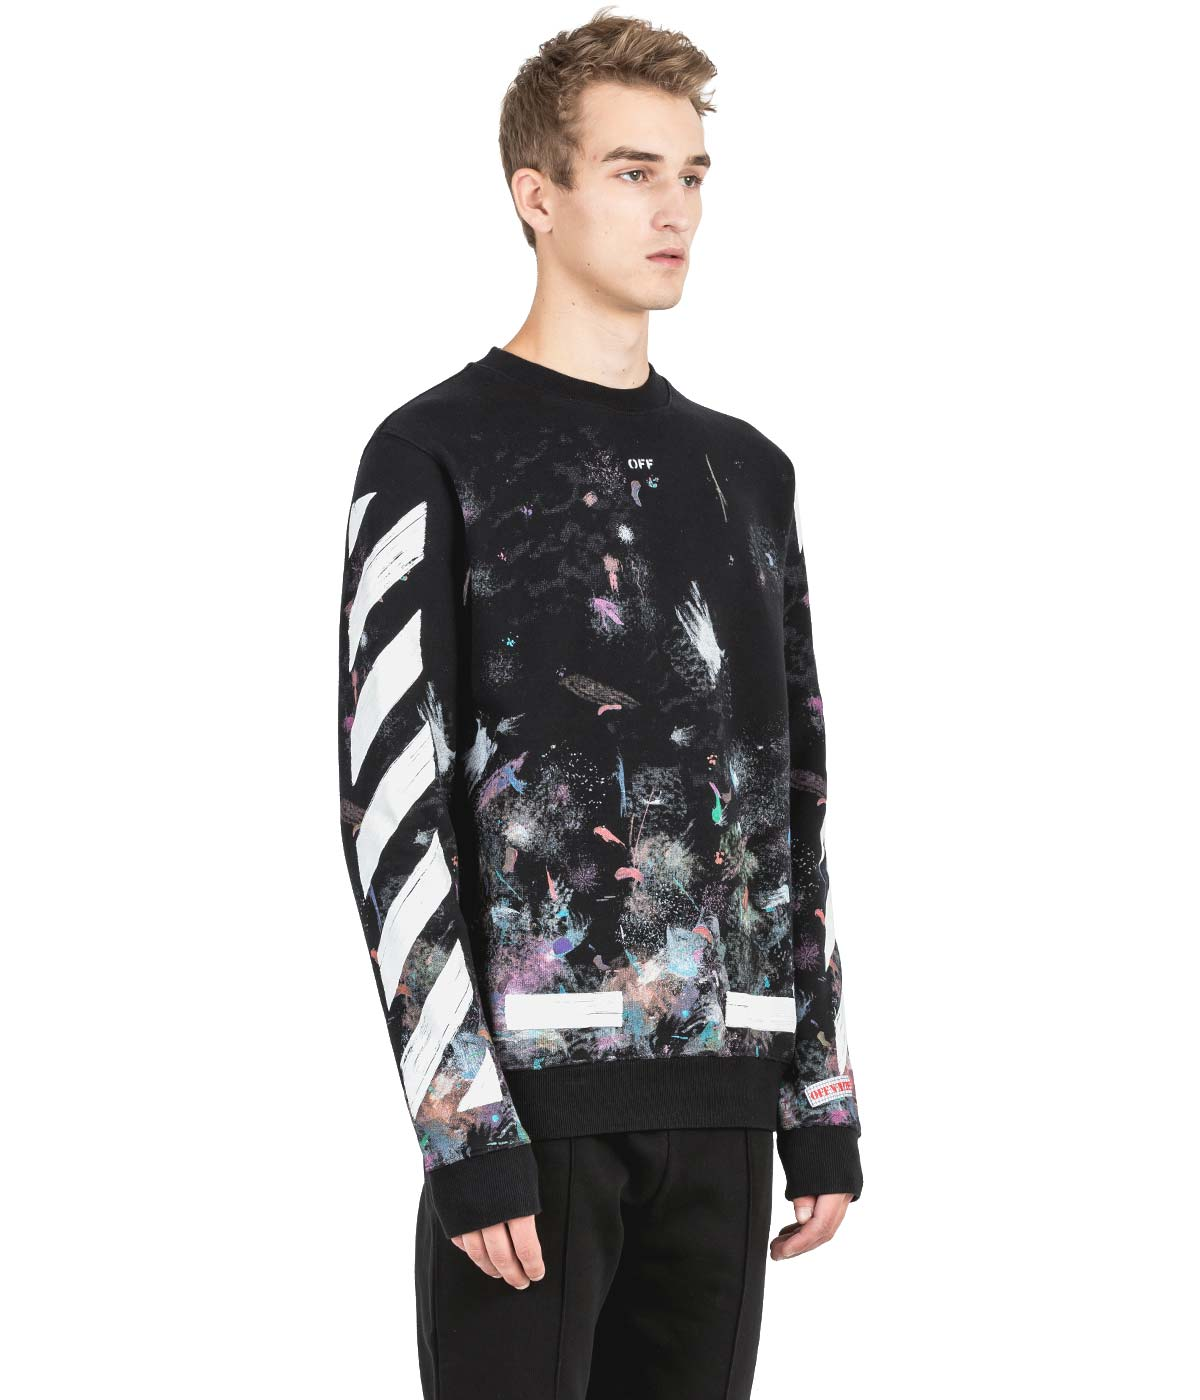 Black Brushed Galaxy Sweatshirt